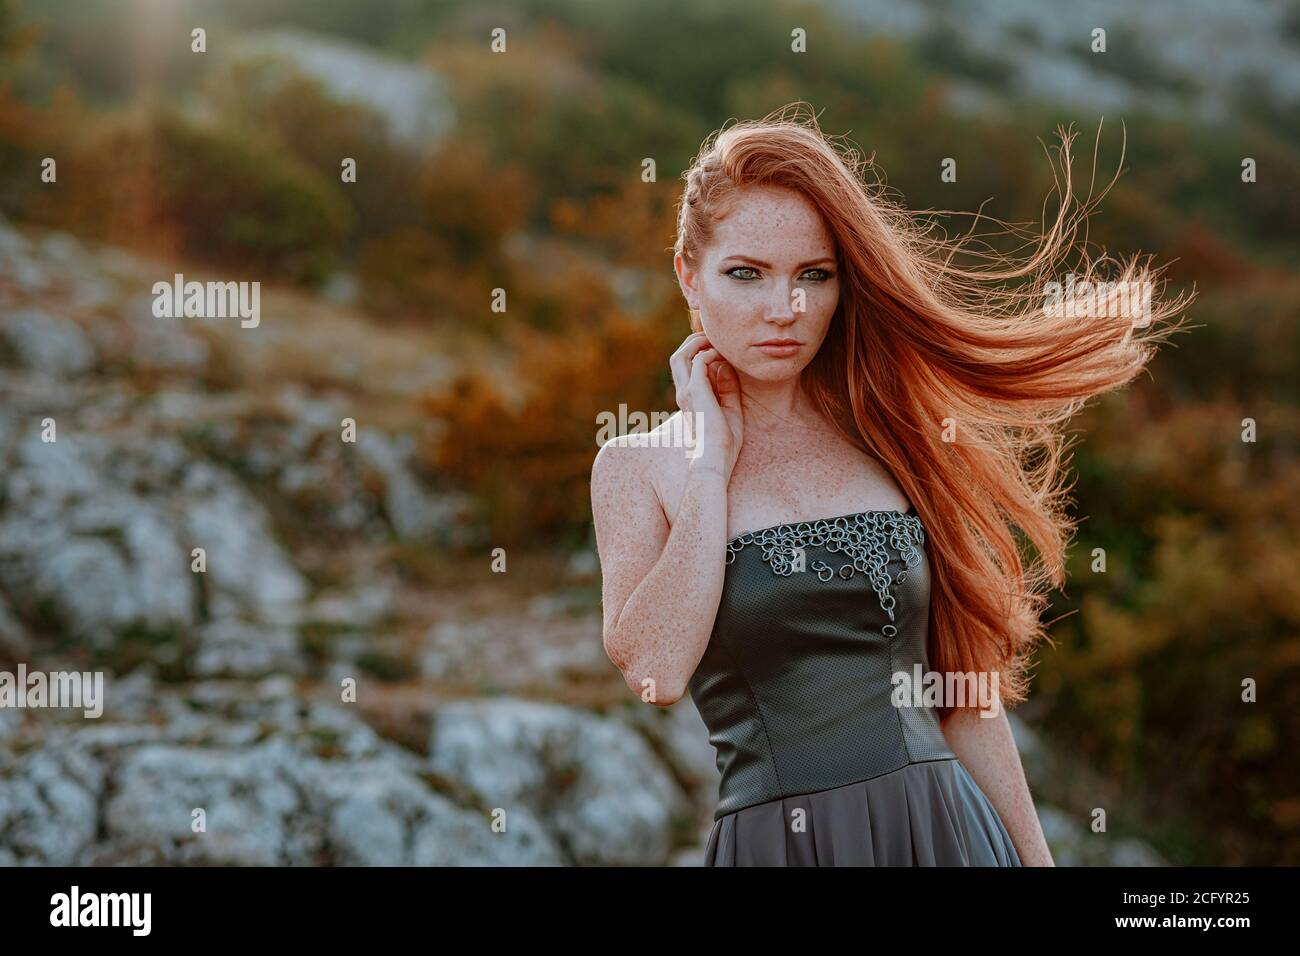 beautiful furious scandinavian warrior ginger woman in grey dress with metal chain mail. Woman is a Viking. Fantasy. Book Cover Stock Photo